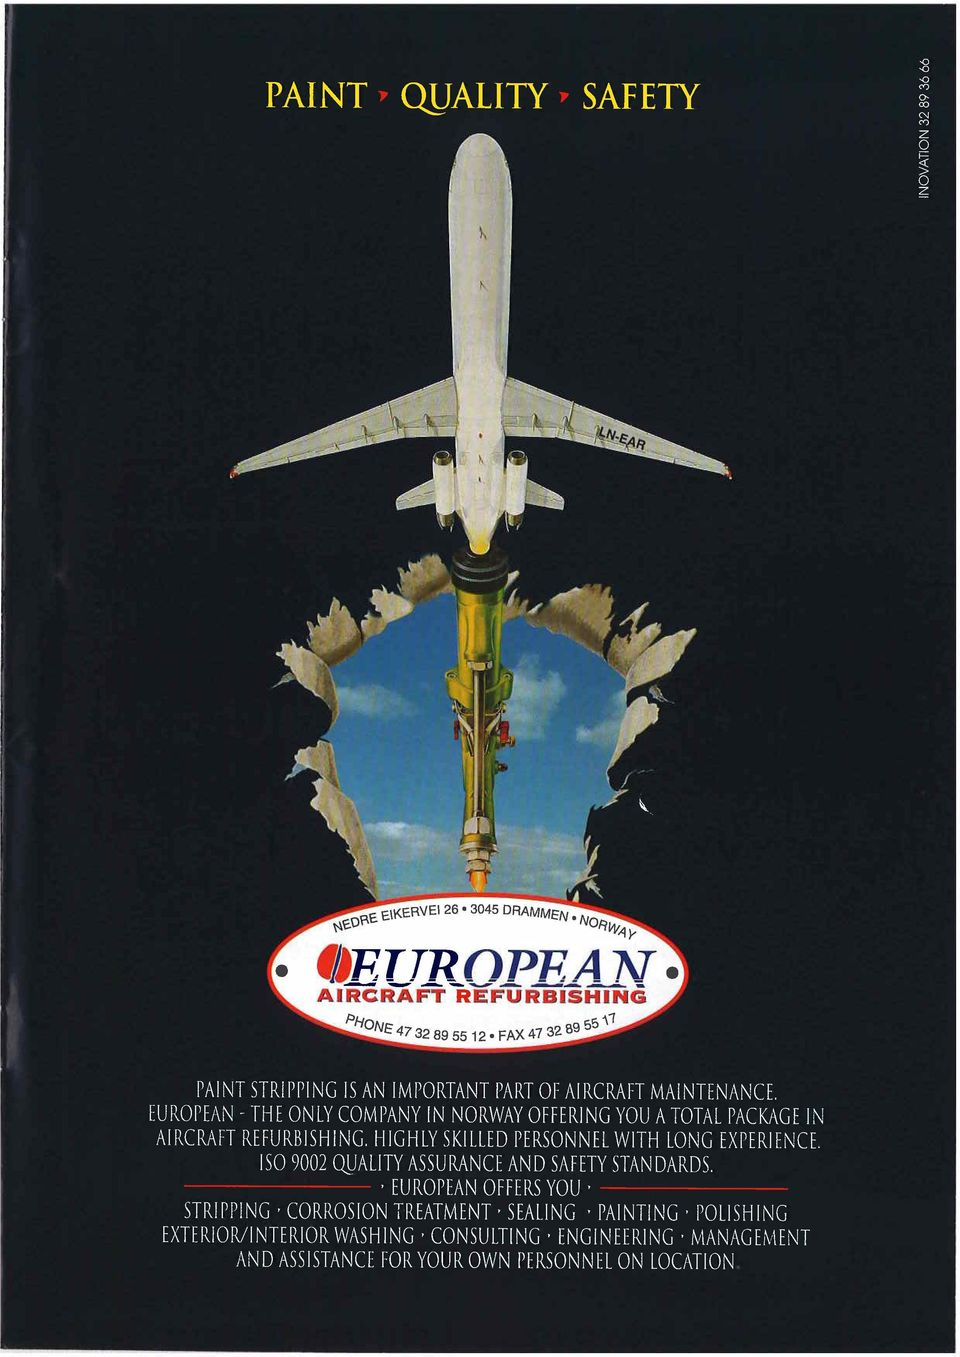 EUROPEAN - THE ONLY COMPANY IN NORWAY OFFERING YOU A TOTAL PACKAGE IN AIRCRAFT REFURBISHING.